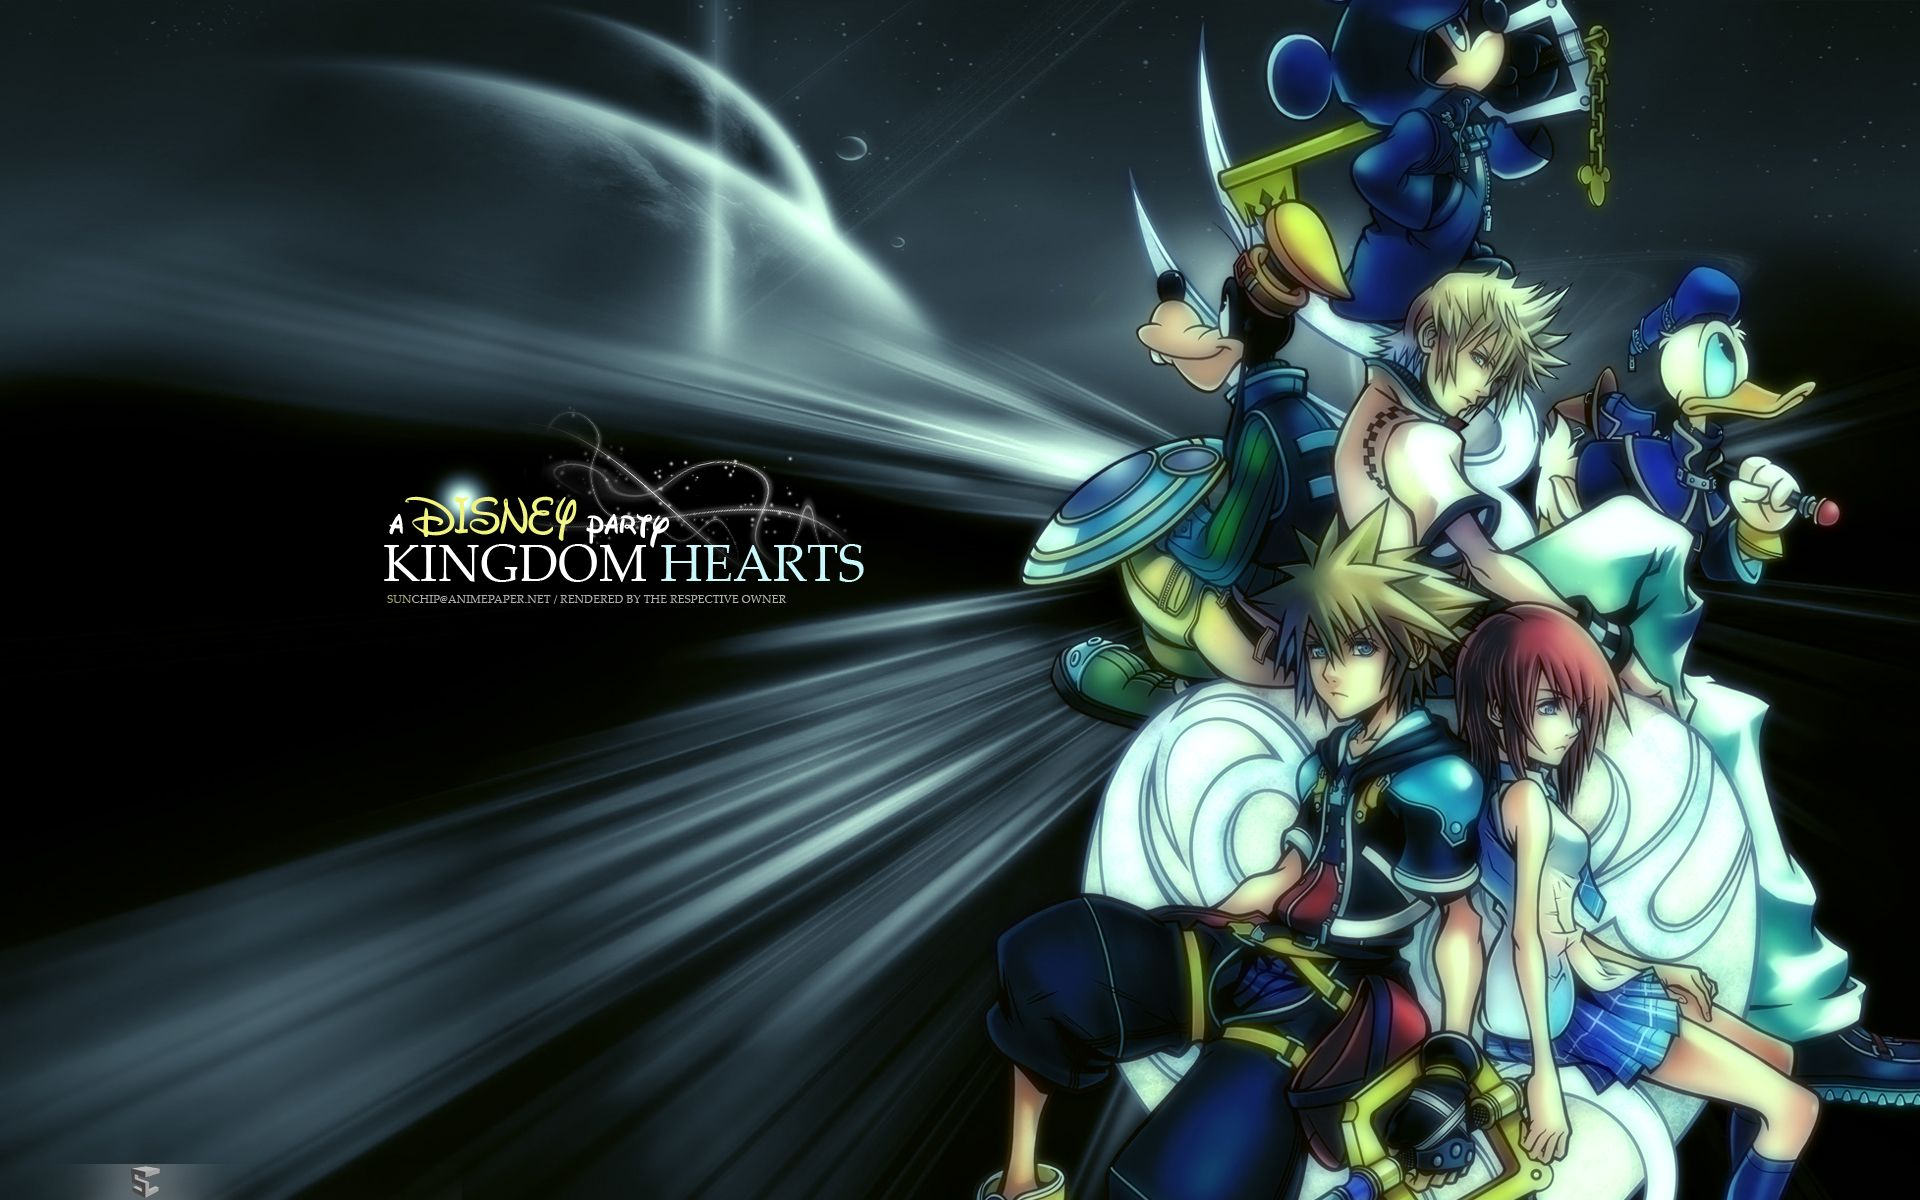 Kingdom Hearts Hd Wallpaper Kingdom Hearts Kingdom Hearts Wallpaper Heart Wallpaper